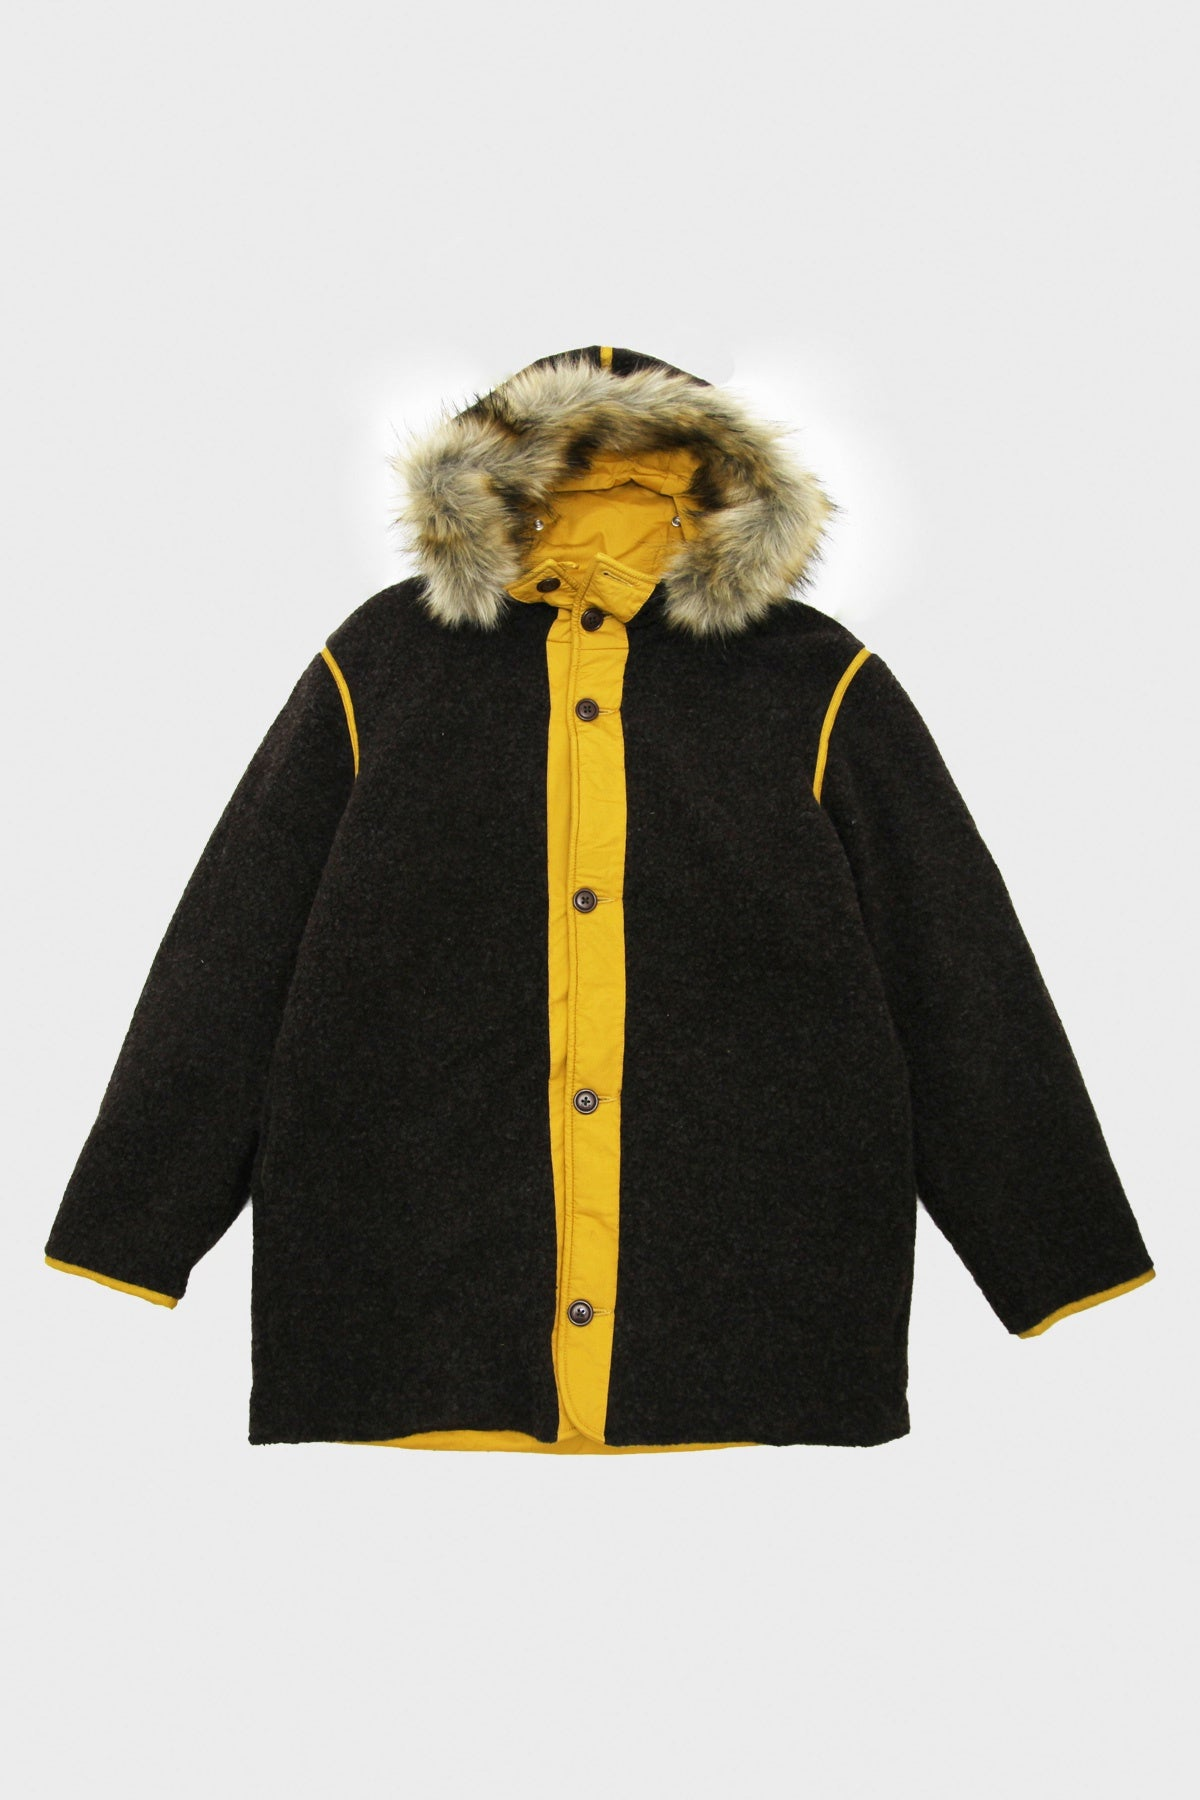 Beams Plus - Reversible Liner Parka - Brown/Mustard - Canoe Club